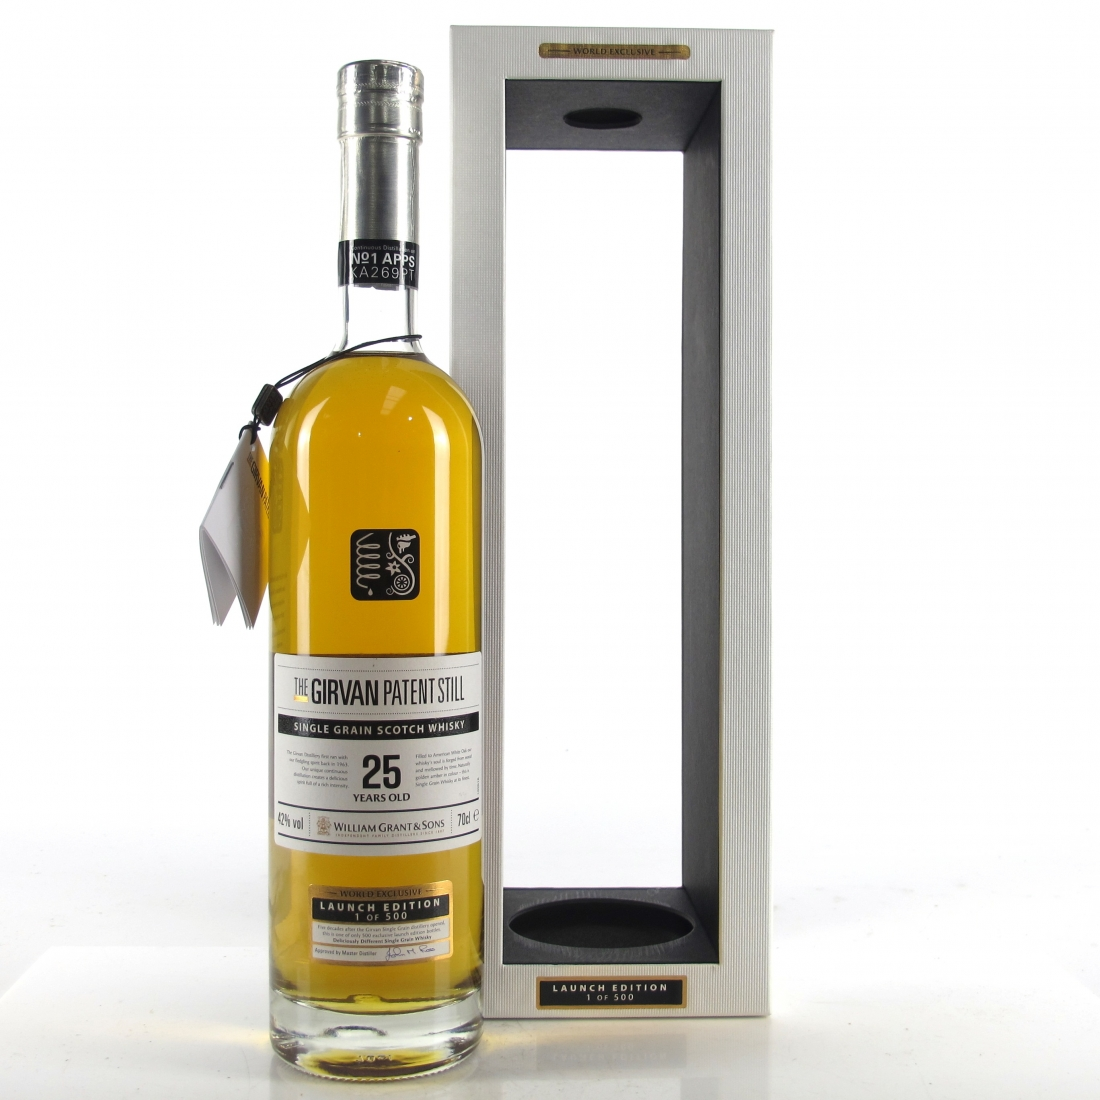 Girvan 25 Year Old Patent Still / Launch Edition